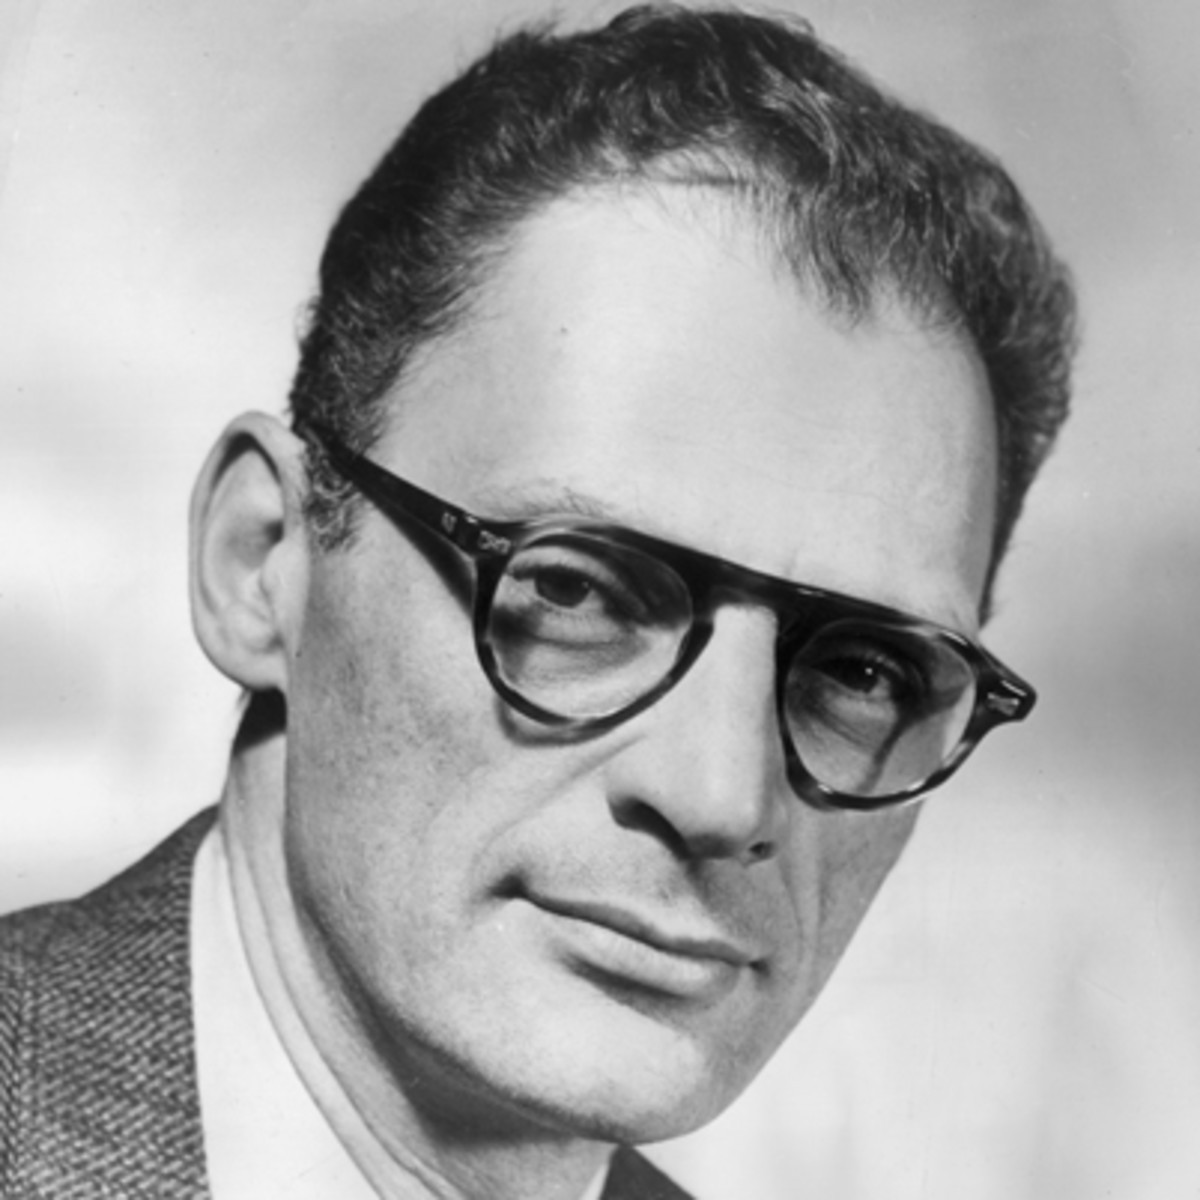 Arthur Miller, the writer of the play 'The Crucible'. Image taken from: https://www.biography.com/writer/arthur-miller